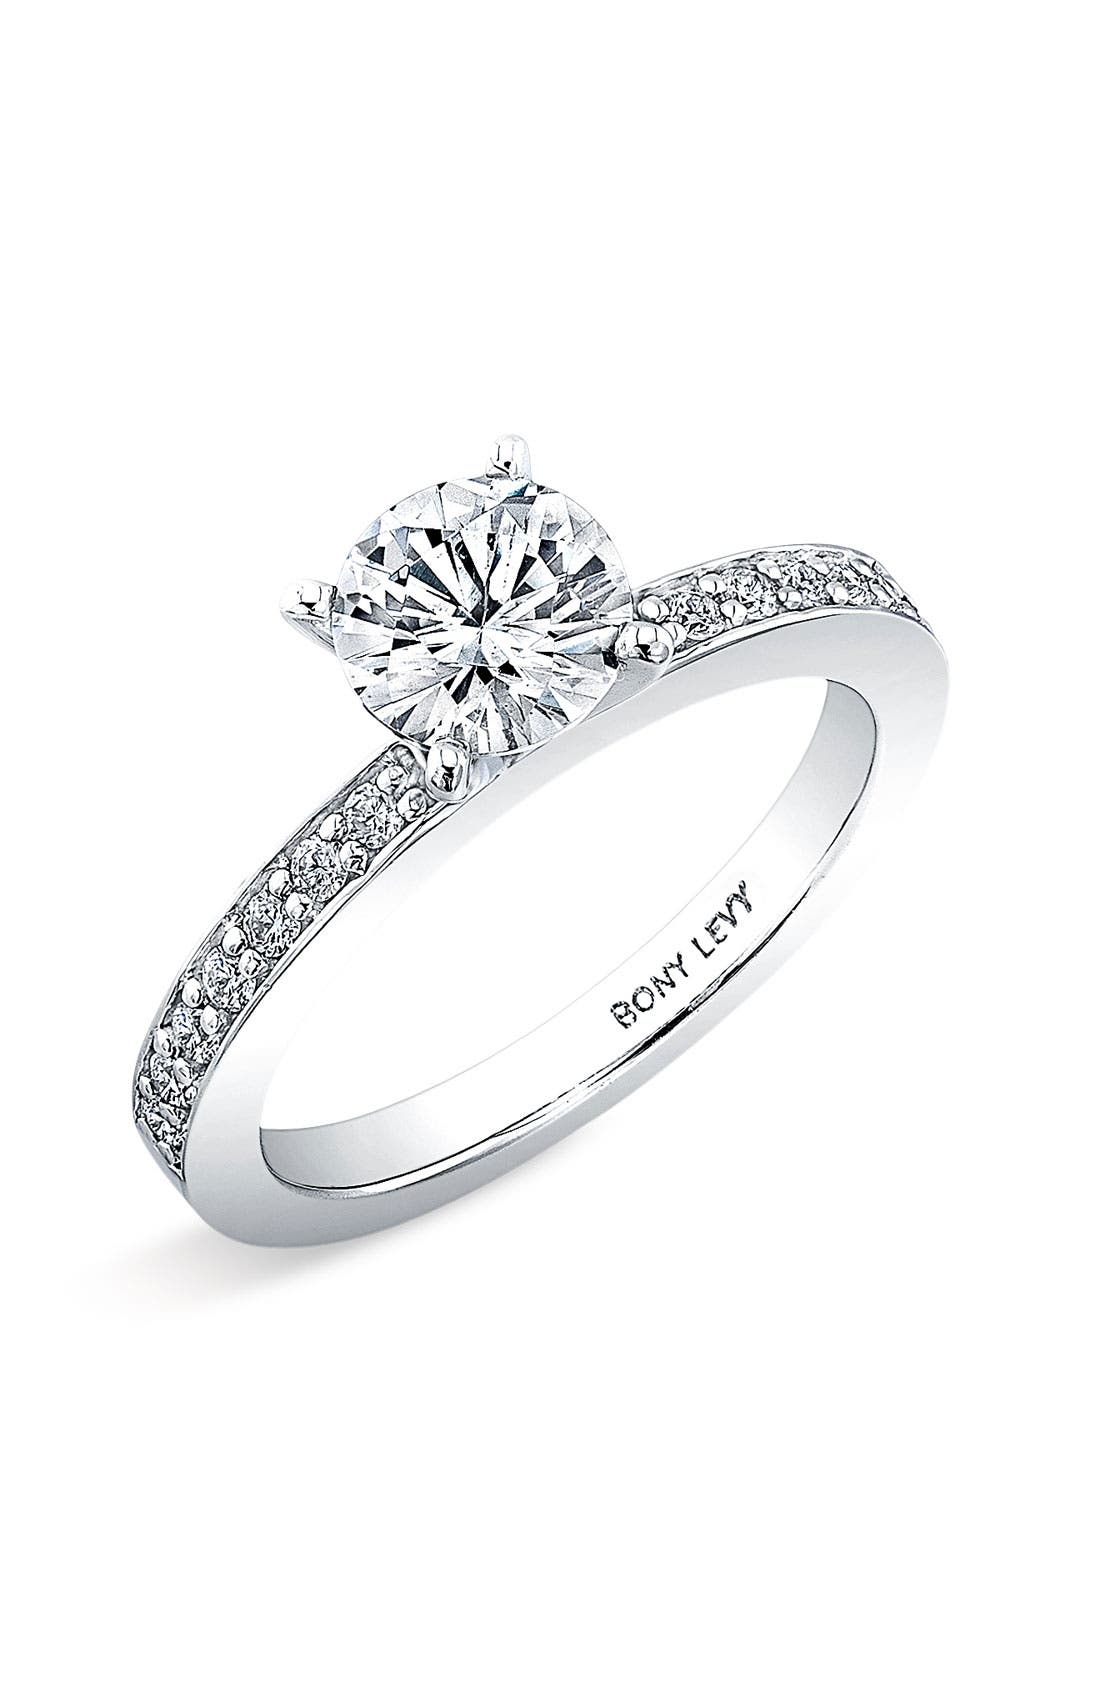 Channel Set Diamond Engagement Ring Setting,                         Main,                         color, White Gold